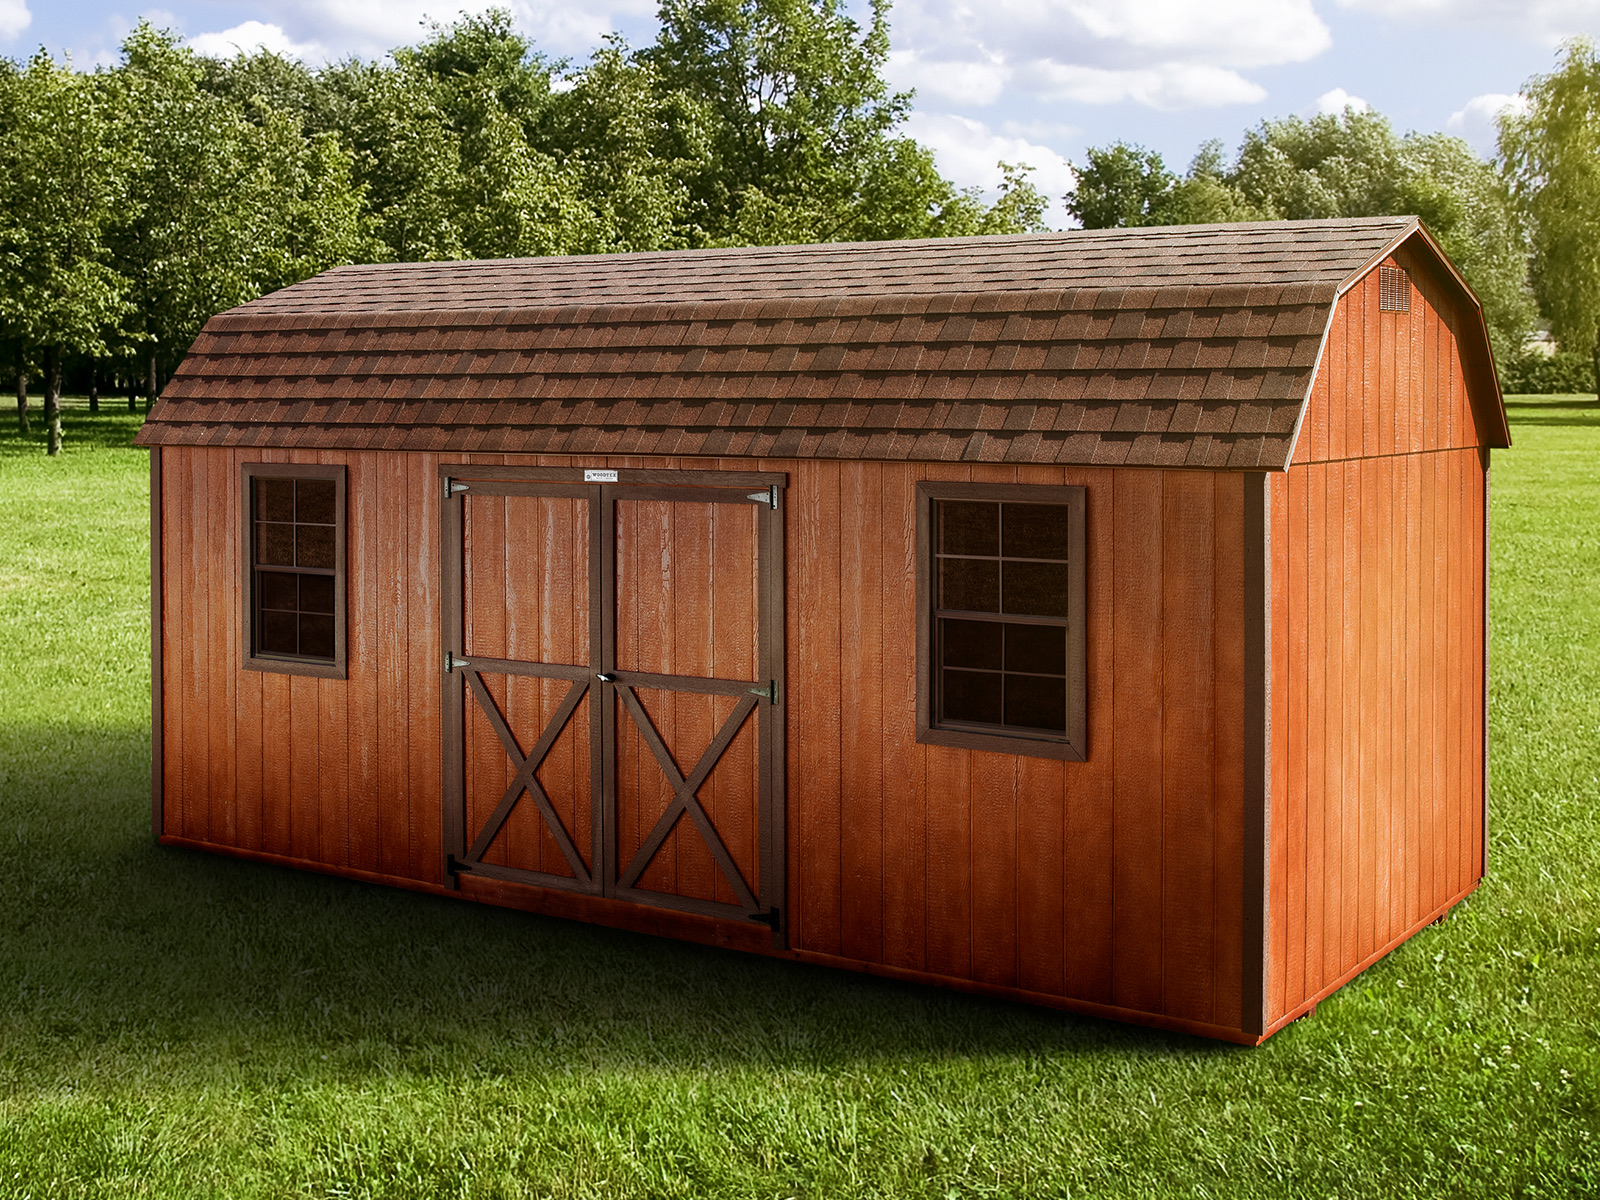 The Lincoln – Woodtex Storage Shed